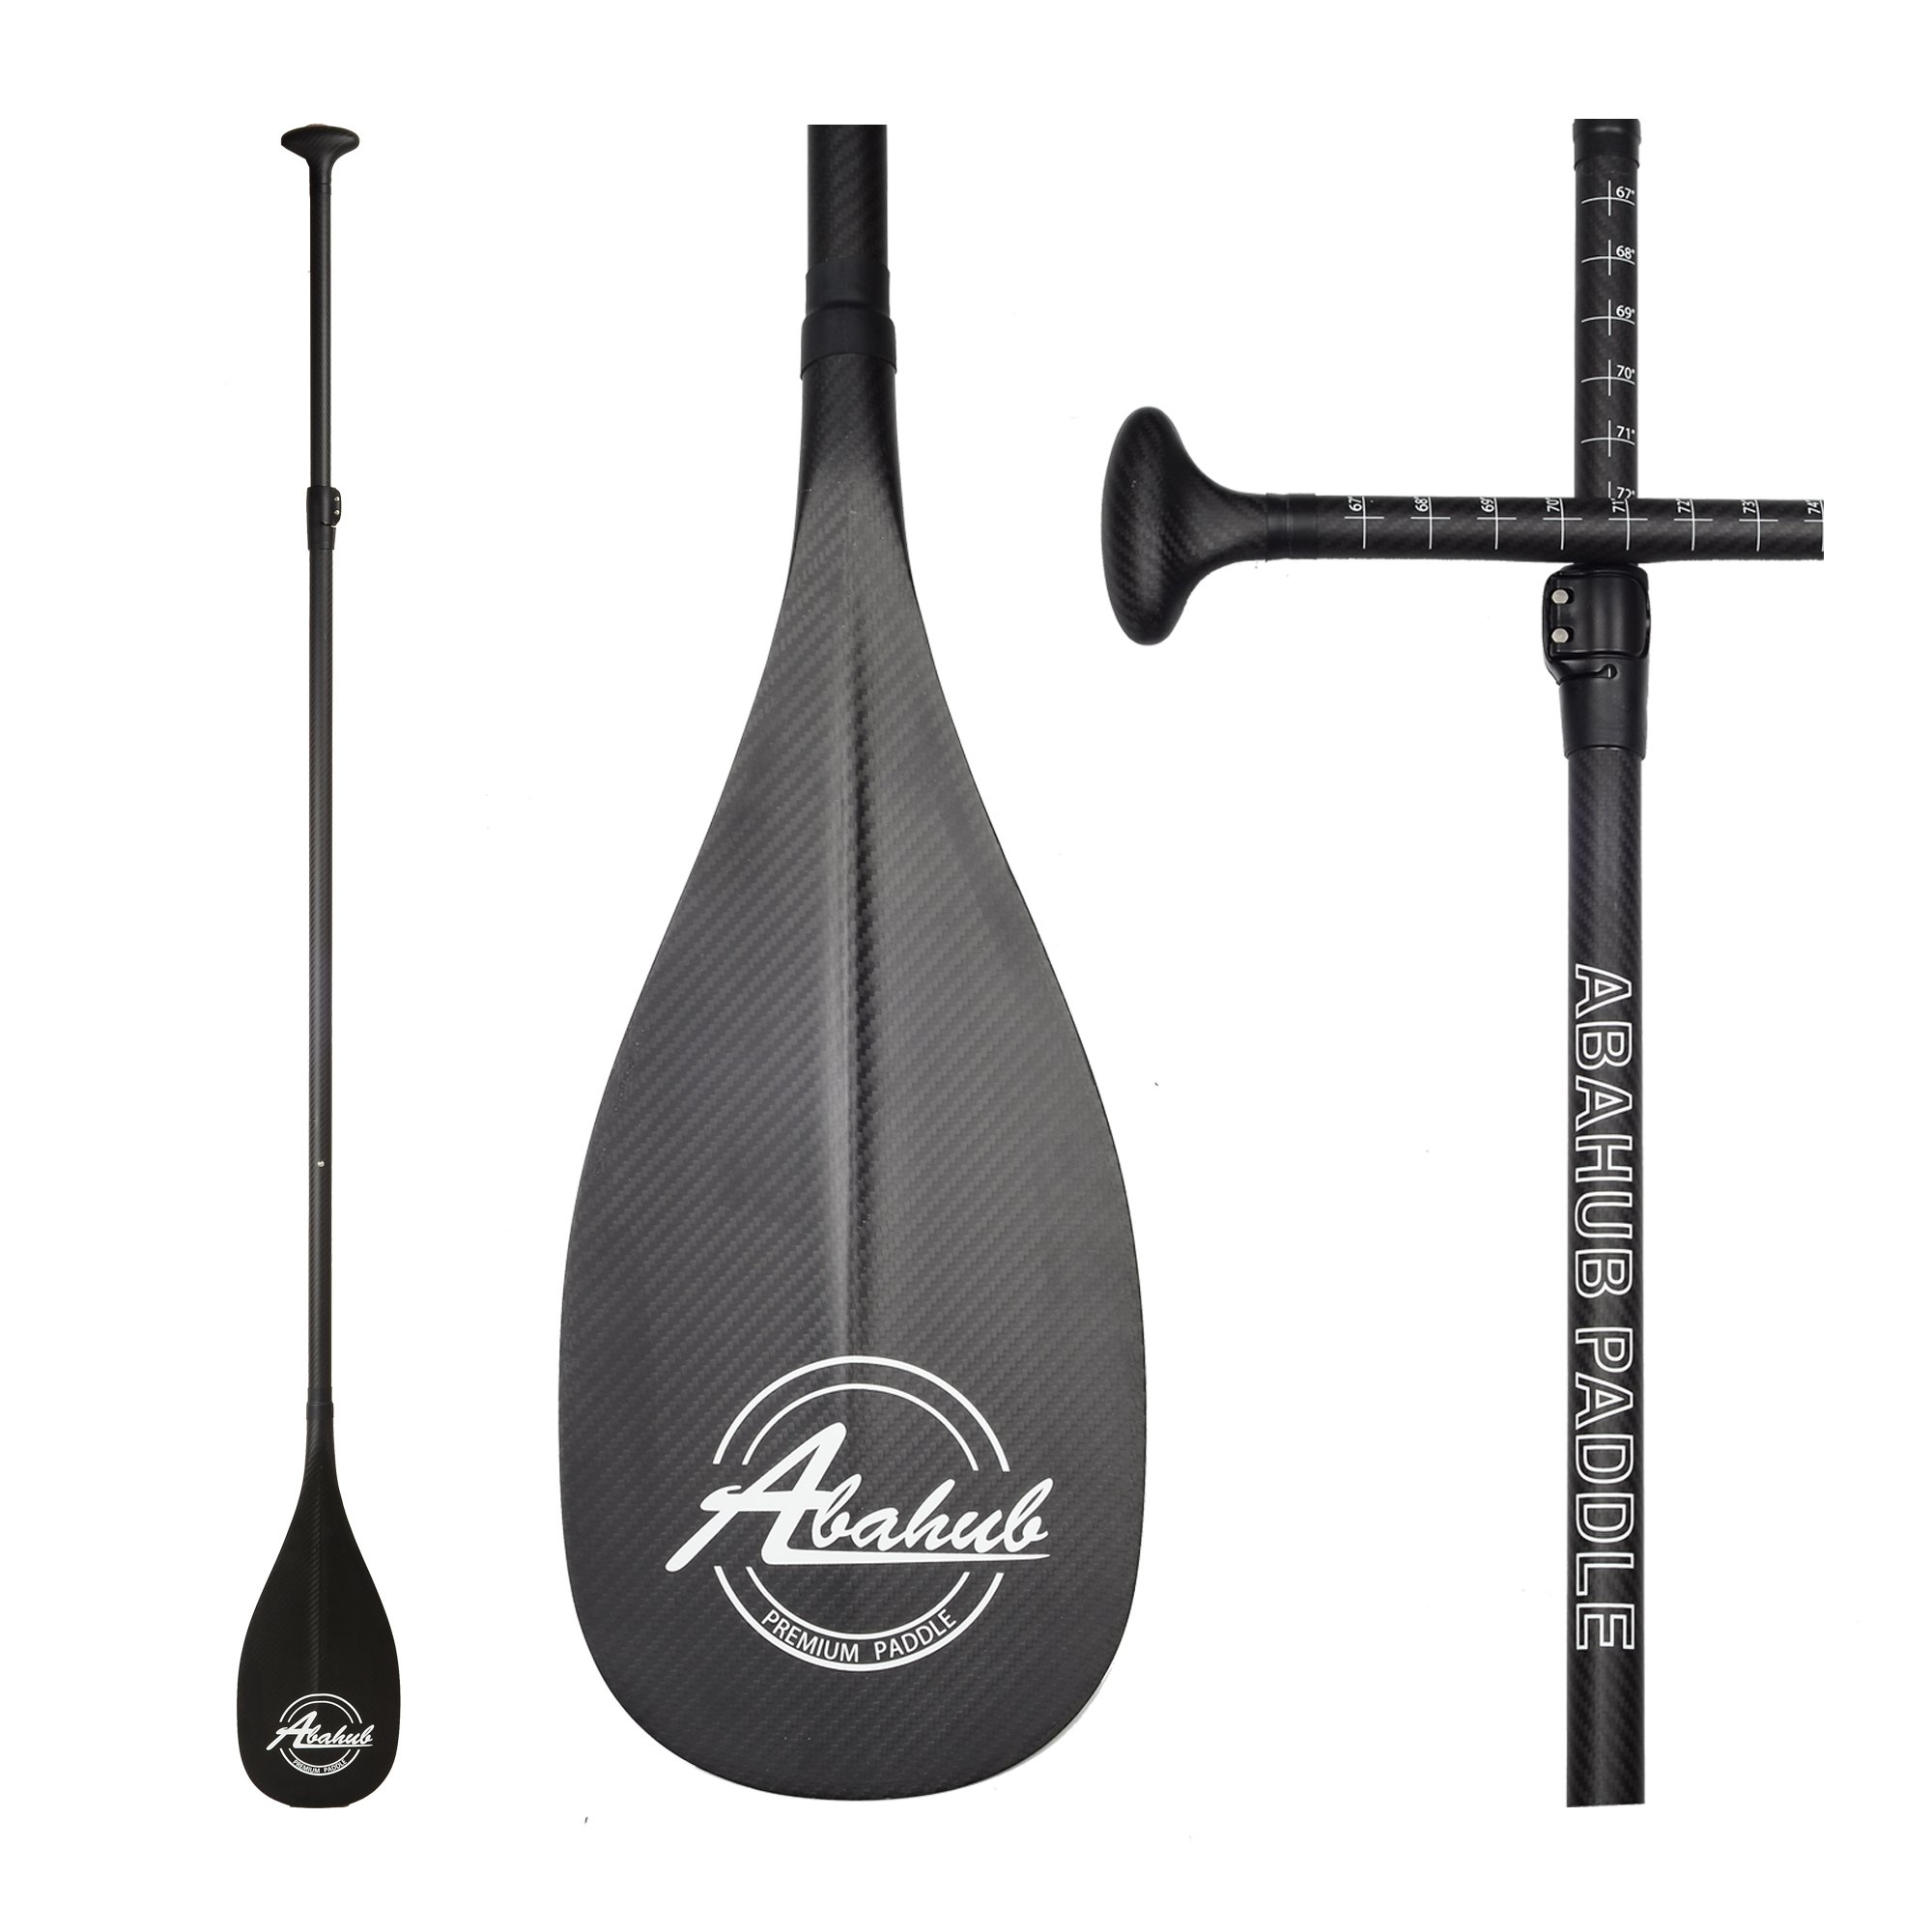 ABAHUB Premium Carbon Fiber SUP Paddle 3-Piece Adjustable Stand Up Paddle Full Carbon Shaft & Blade + Bag